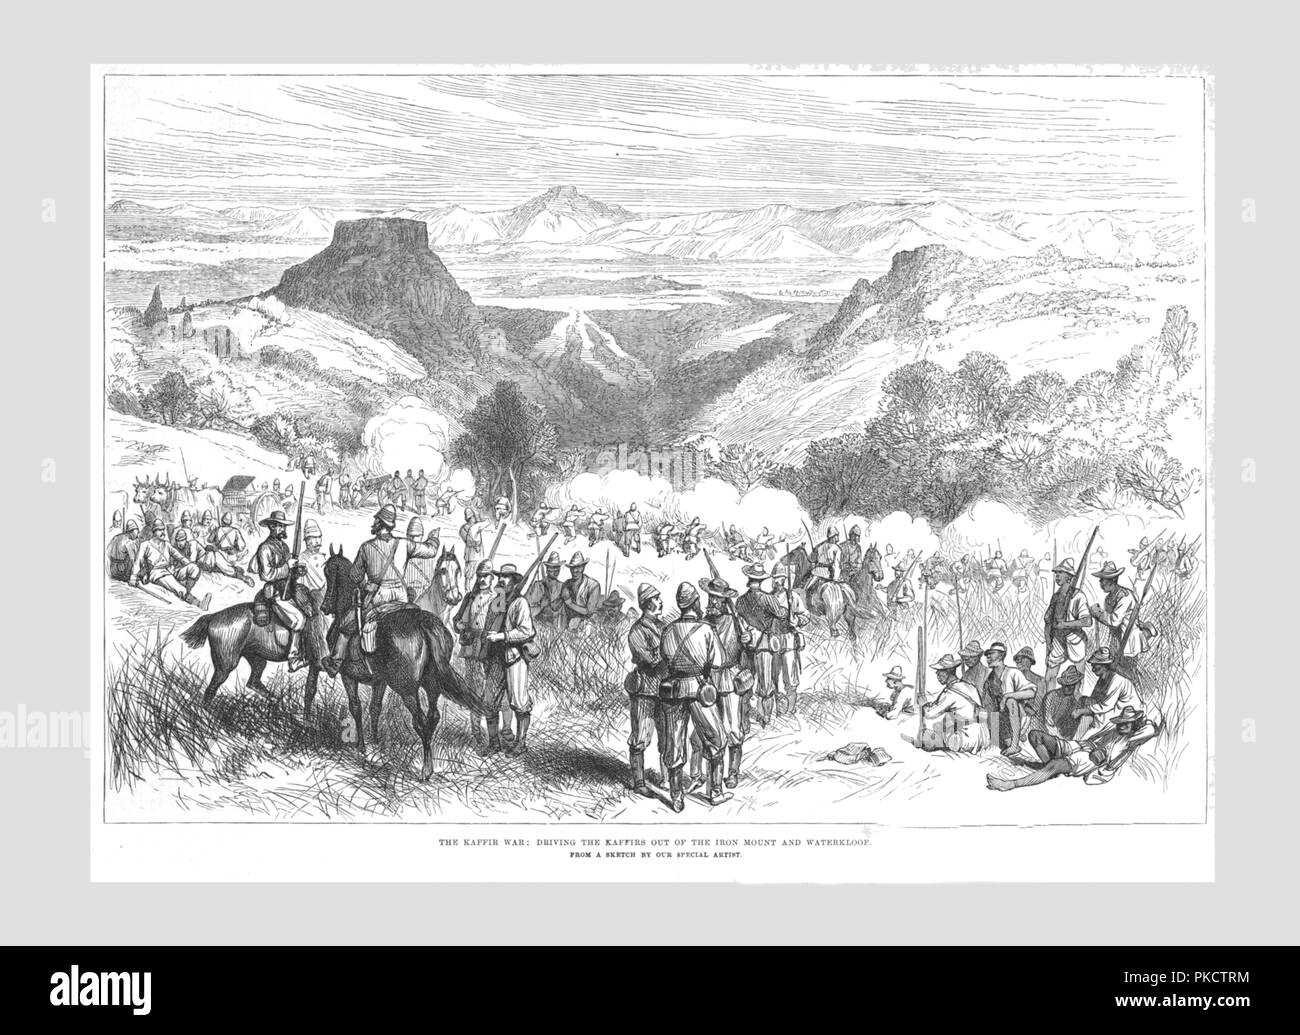 'The Kaffir War - Driving the Kaffirs out of the Iron Mount and Waterkloof', 1878. The British imperialists forcing indigenous people off their land in what is now South Africa. 'Kaffir' is a derogatory term for black Africans. From the Illustrated London News, 11 May 1878. - Stock Image